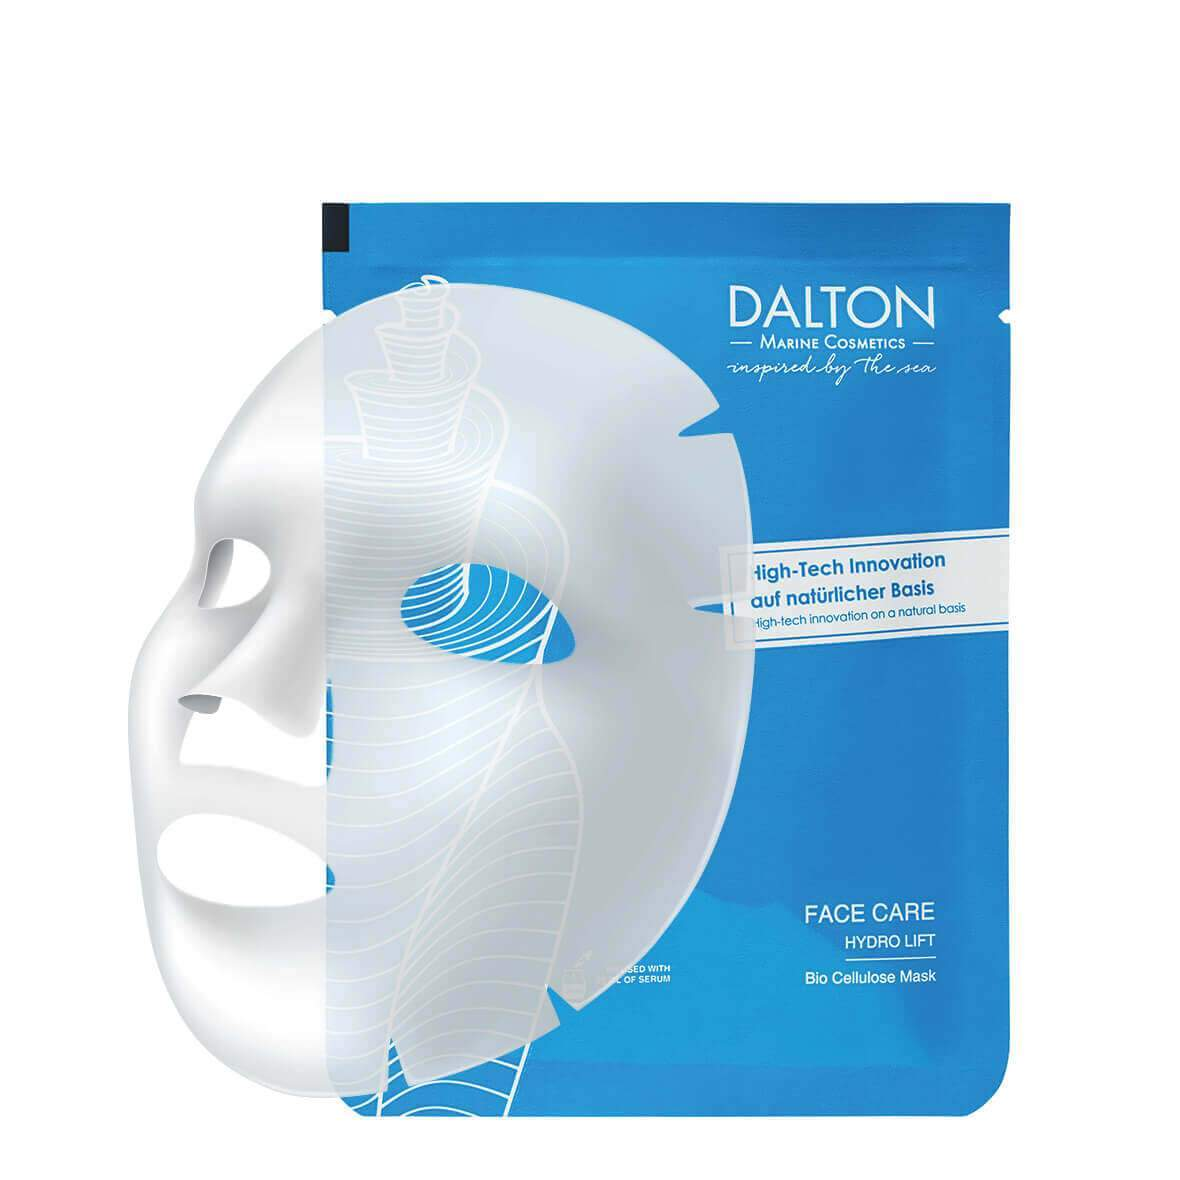 Mască, Face Care Bio Cellulose Mask 1plic. 20 ml., Dalton Marine Cosmetics, Era Cosmetics